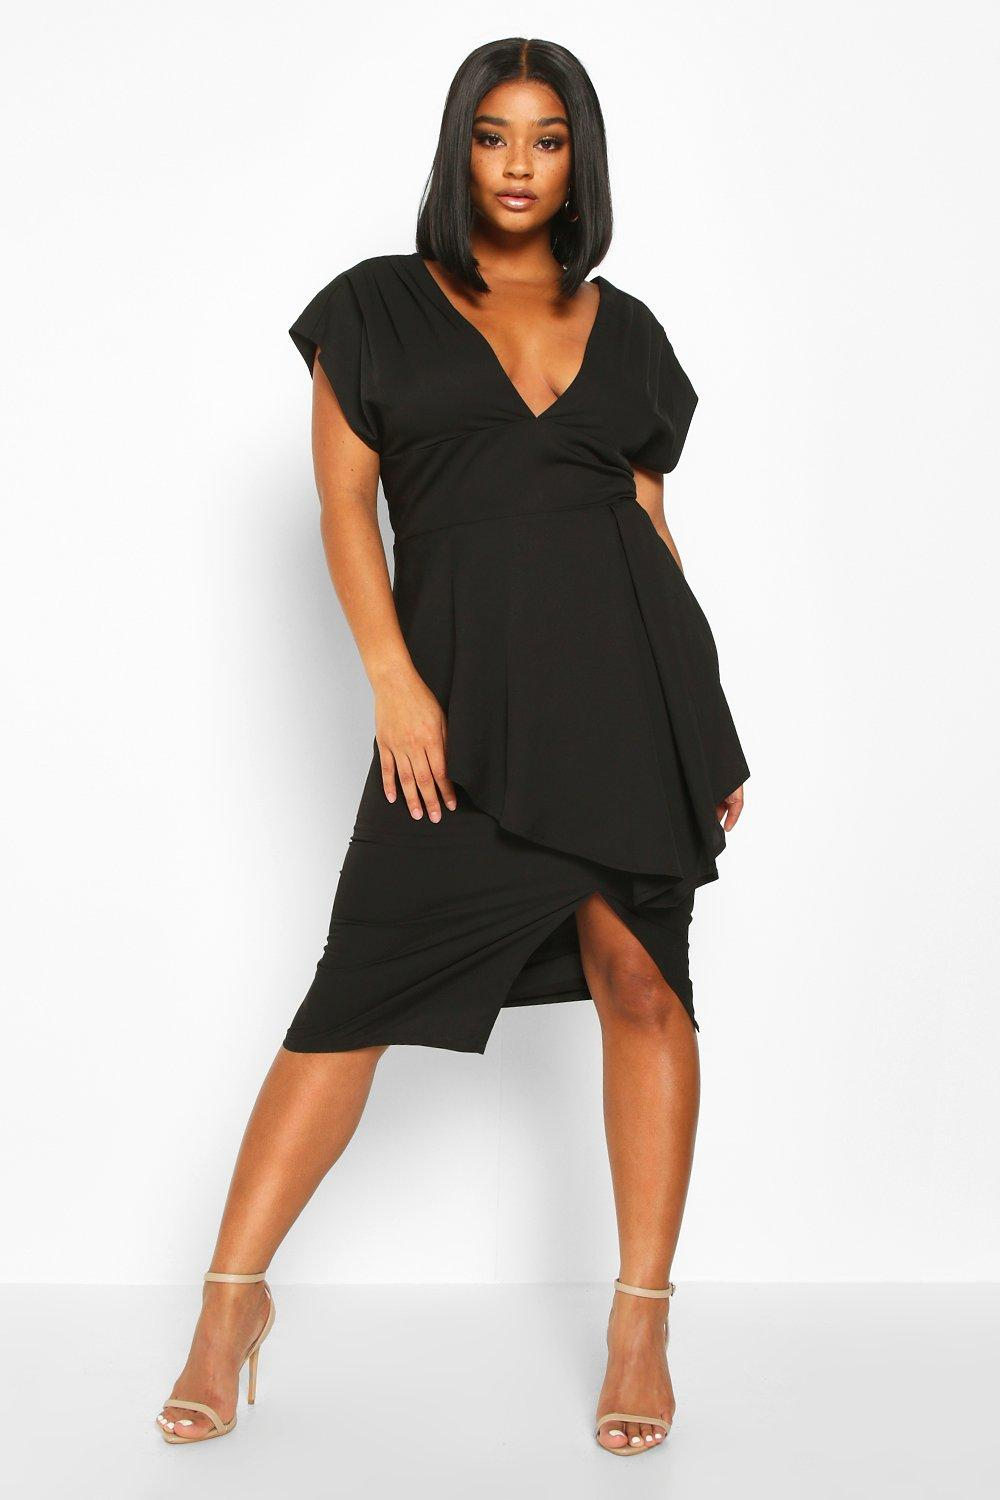 boohoo Womens Plus Plunge Ruffle Detail Midi Dress - Black - 22, Black